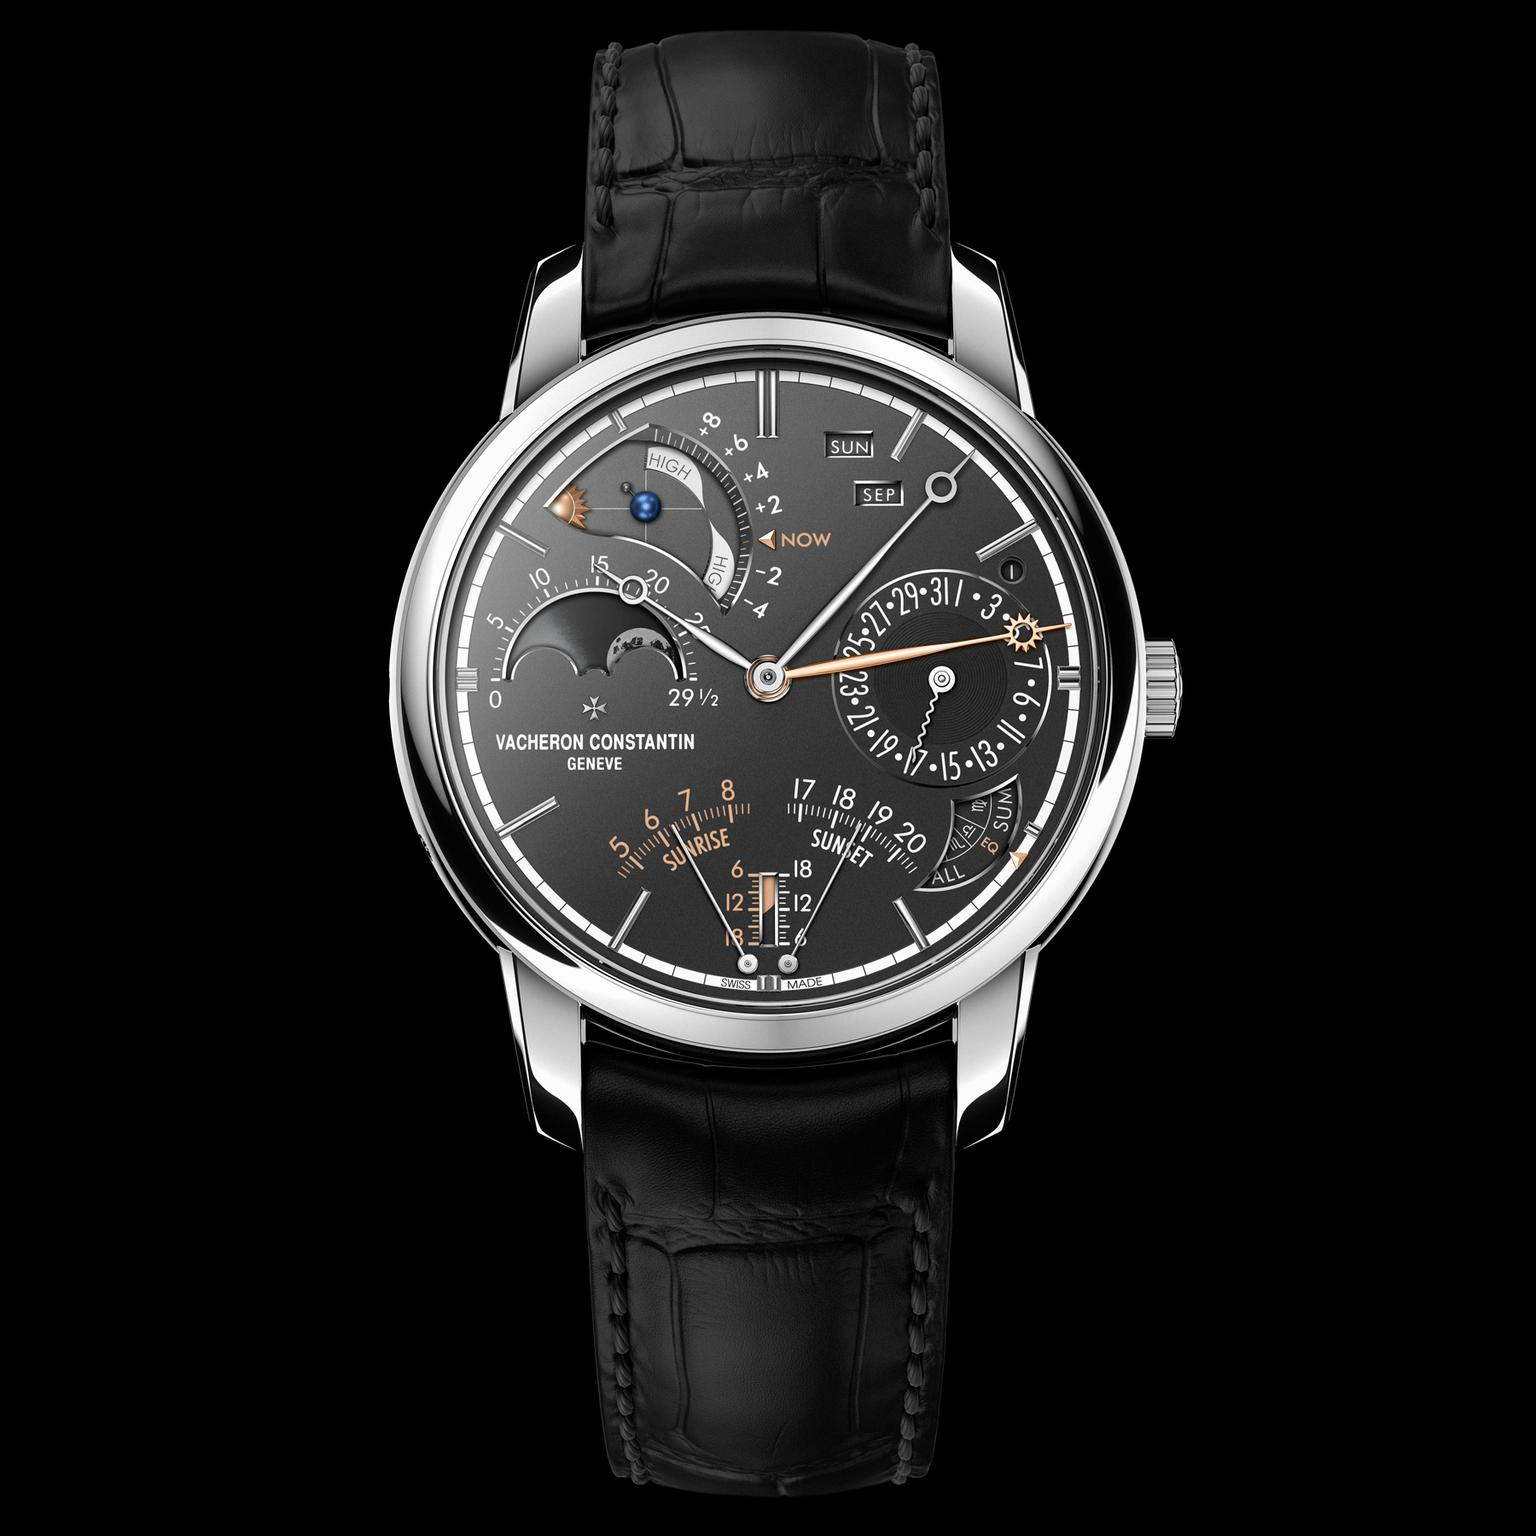 Vacheron Constantin Celestia Astronomical Grand Complication watch